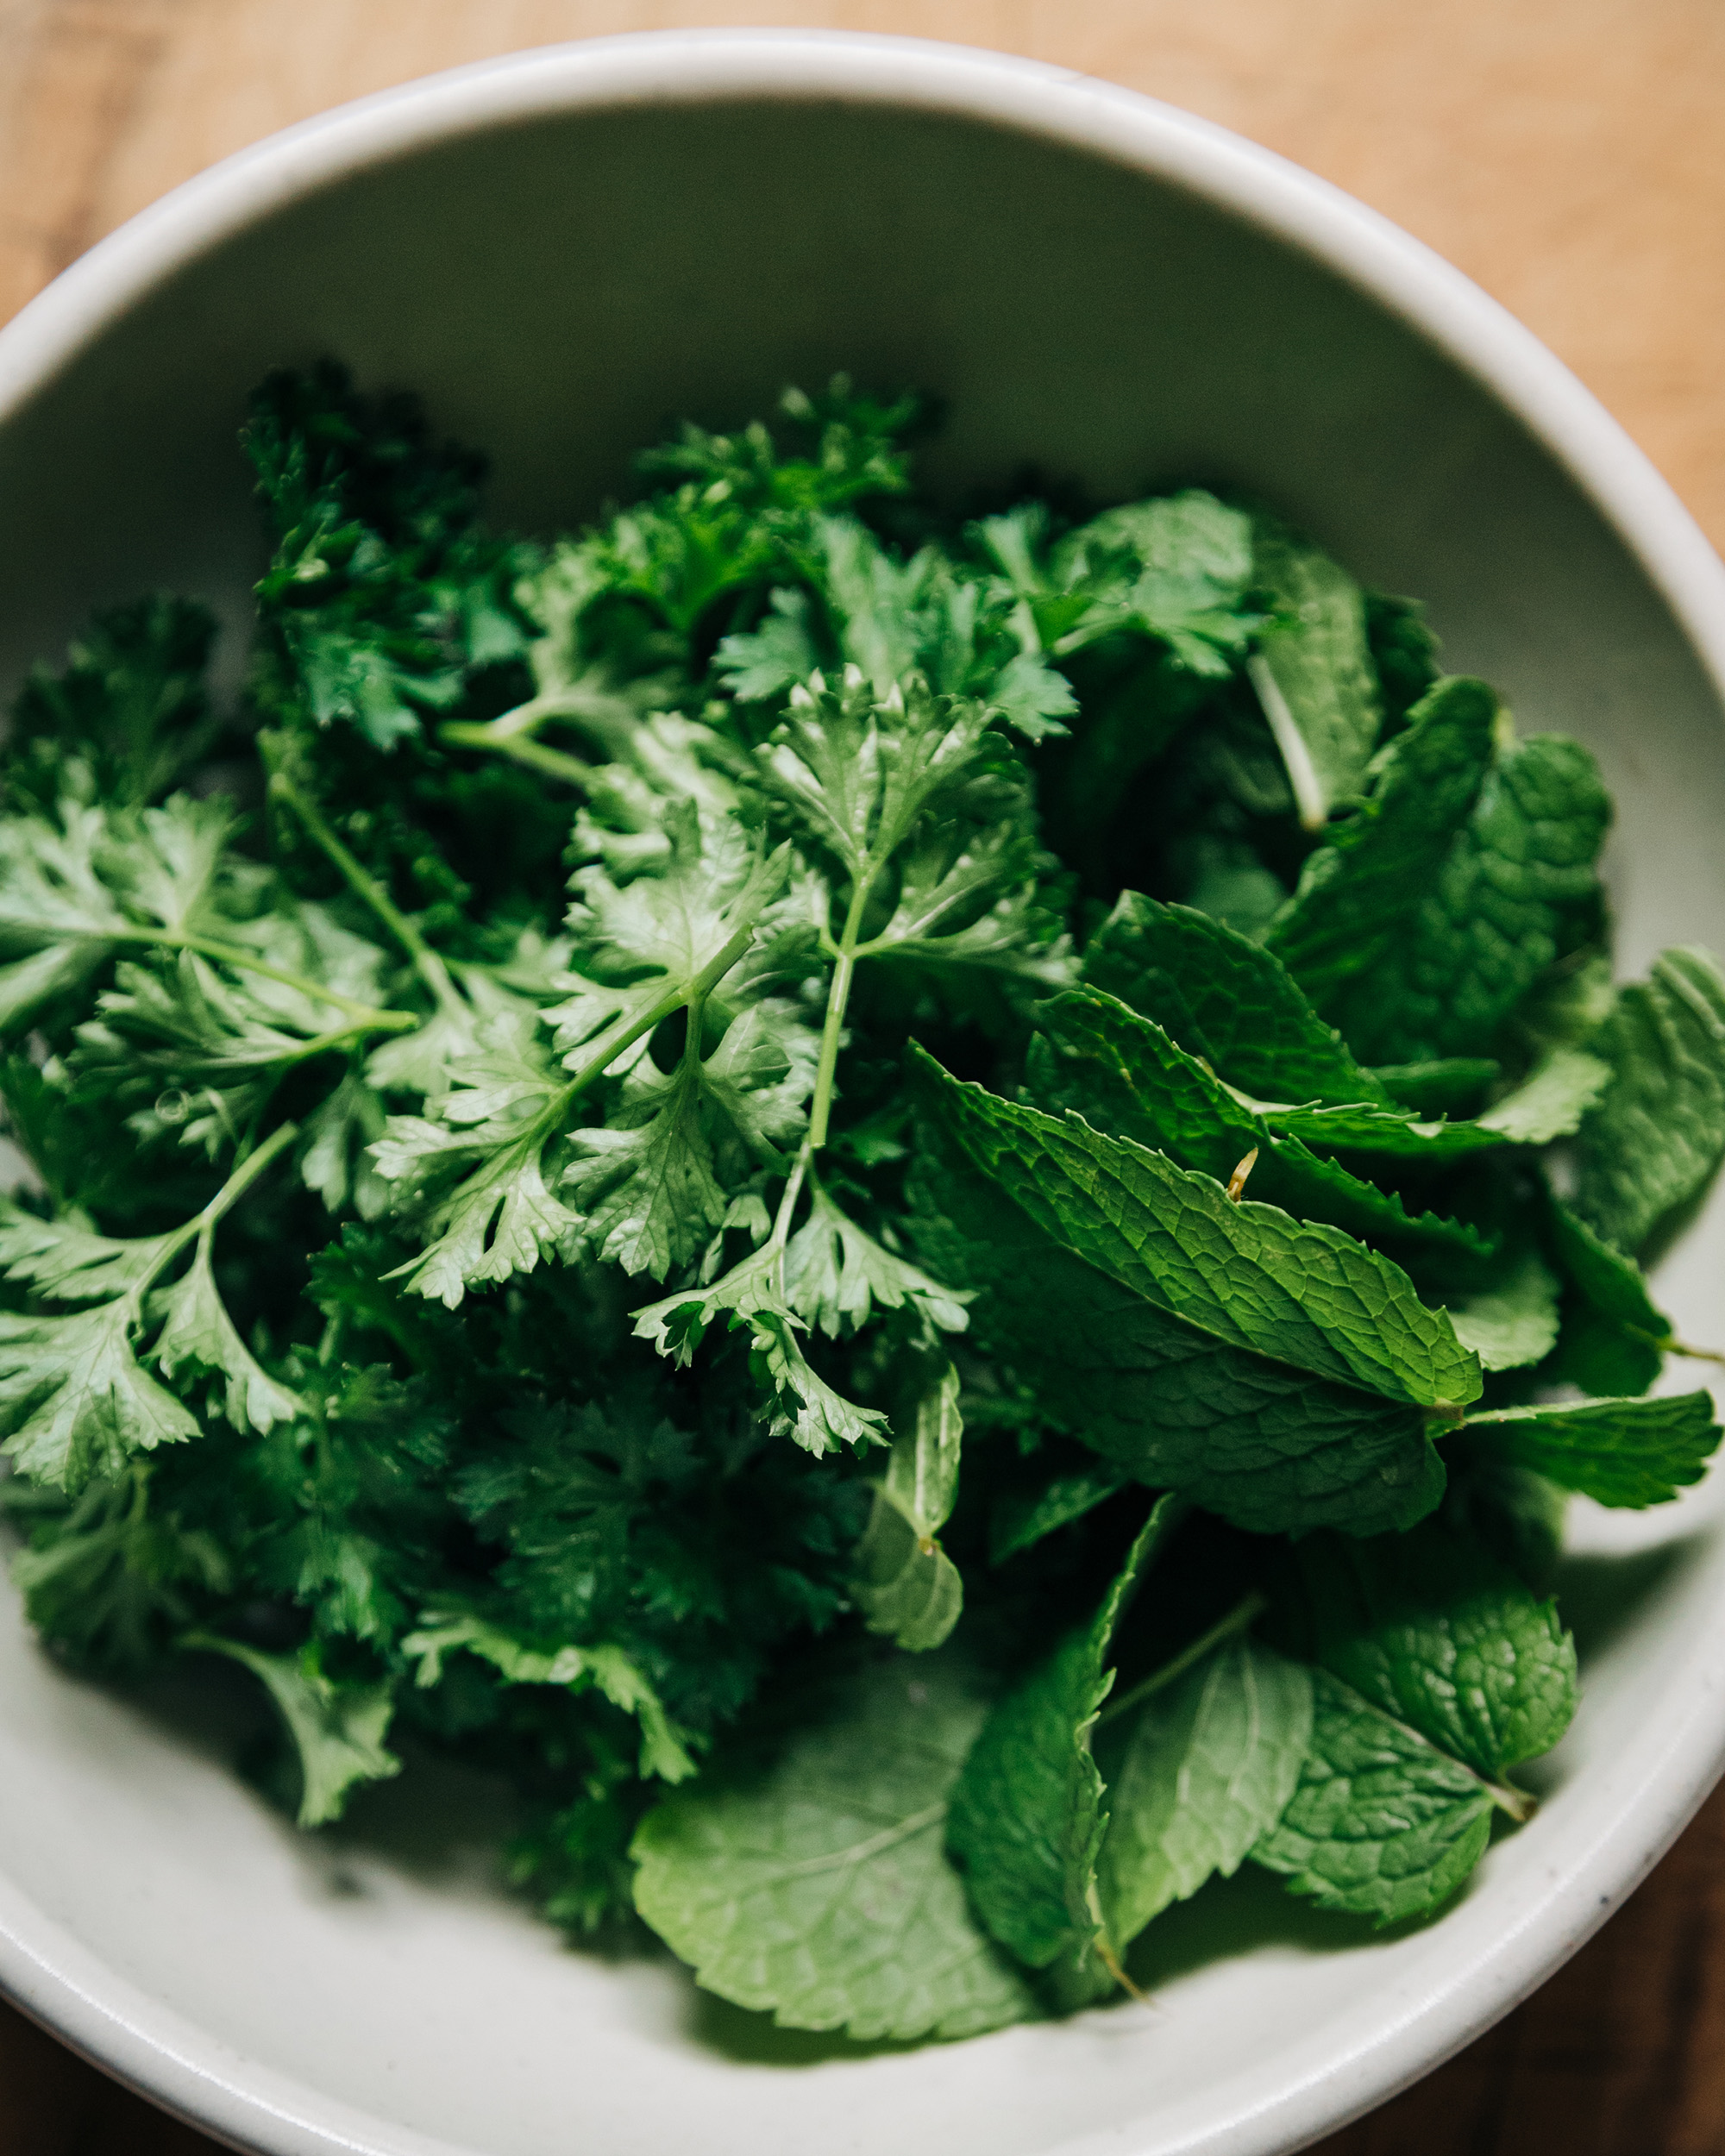 An up close, overhead shot of parsley and mint leaves in a white bowl.